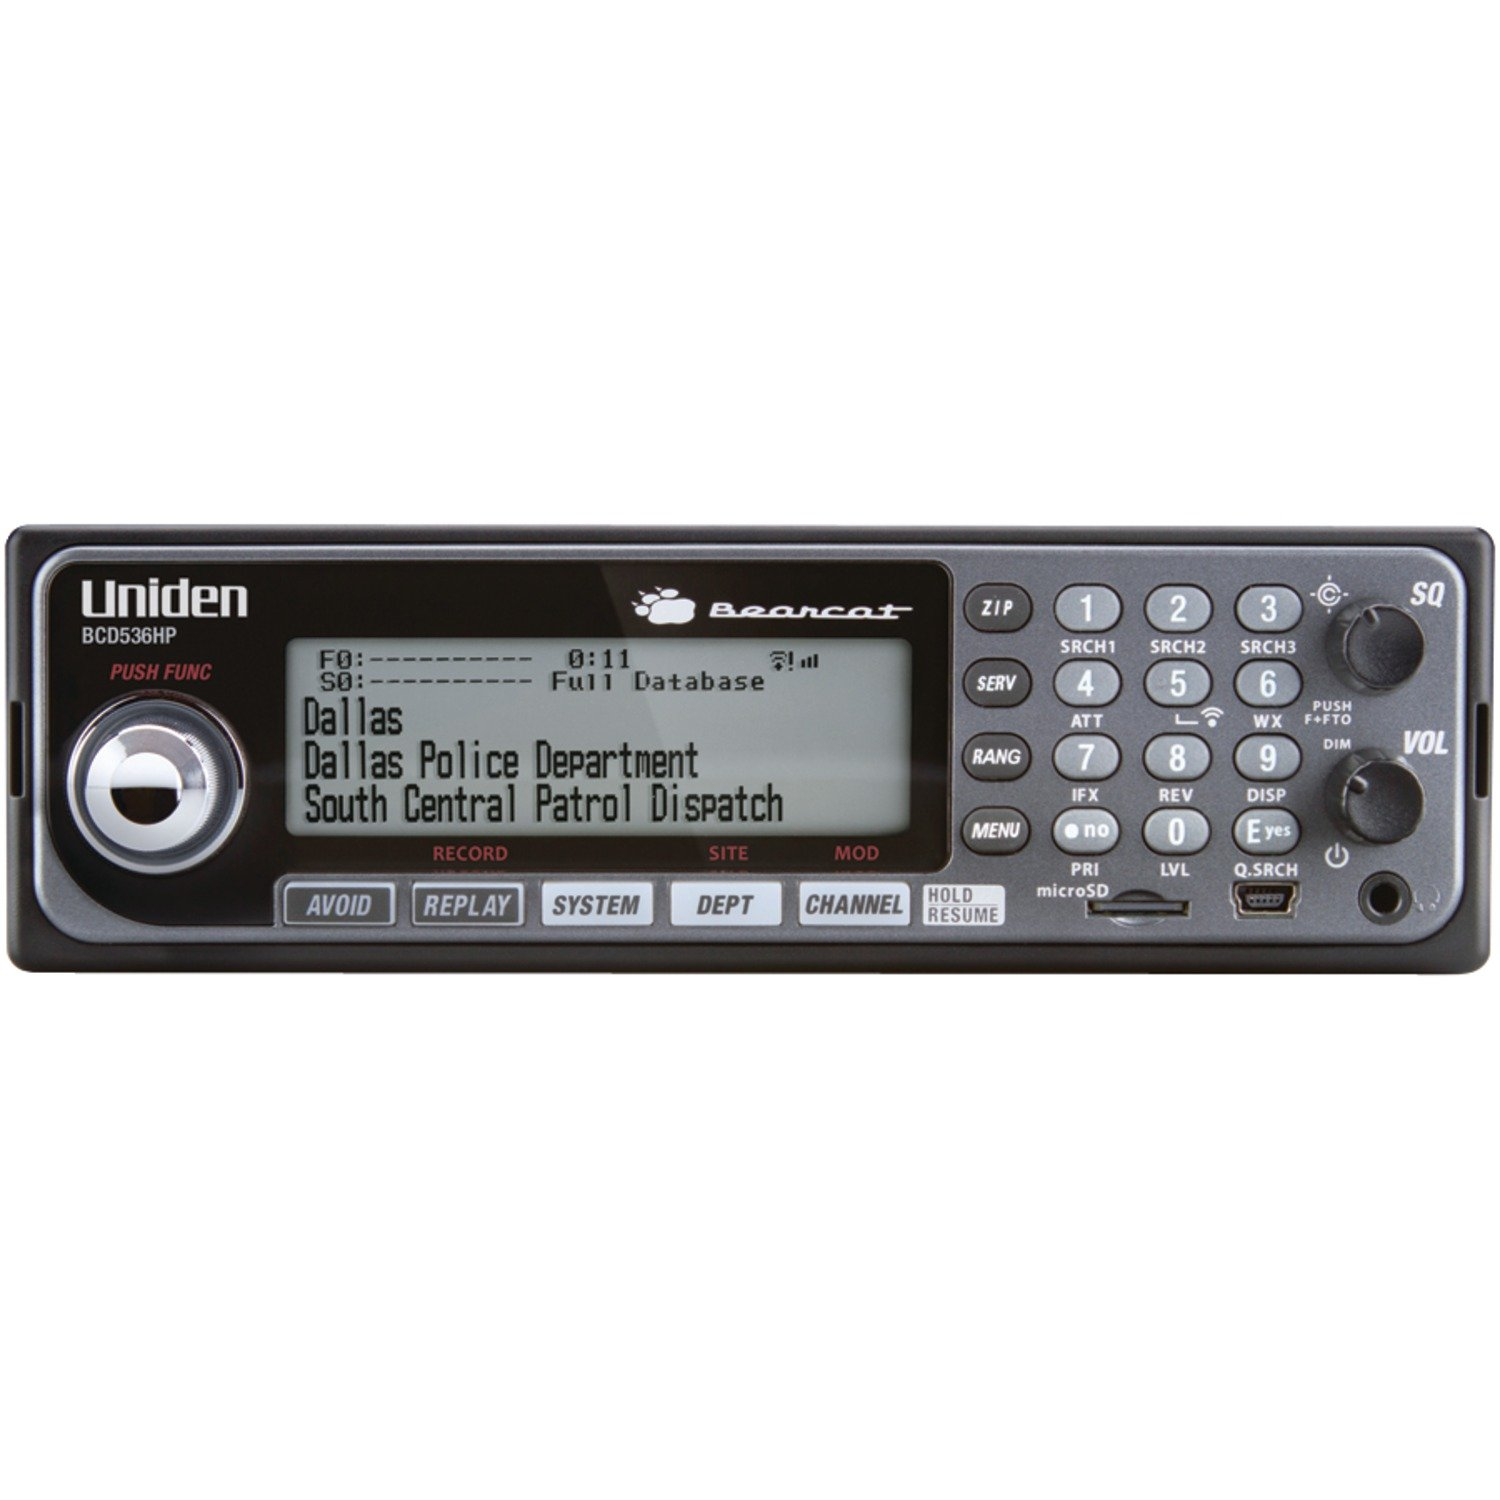 Uniden BCD536HP HomePatrol Series Digital Phase 2 Base/Mobile Scanner with HPDB and Wi-Fi. Simple Programming, TrunkTracker V, S.A.M.E. Emergency/Weather Alert. Covers USA and Canada. by Uniden